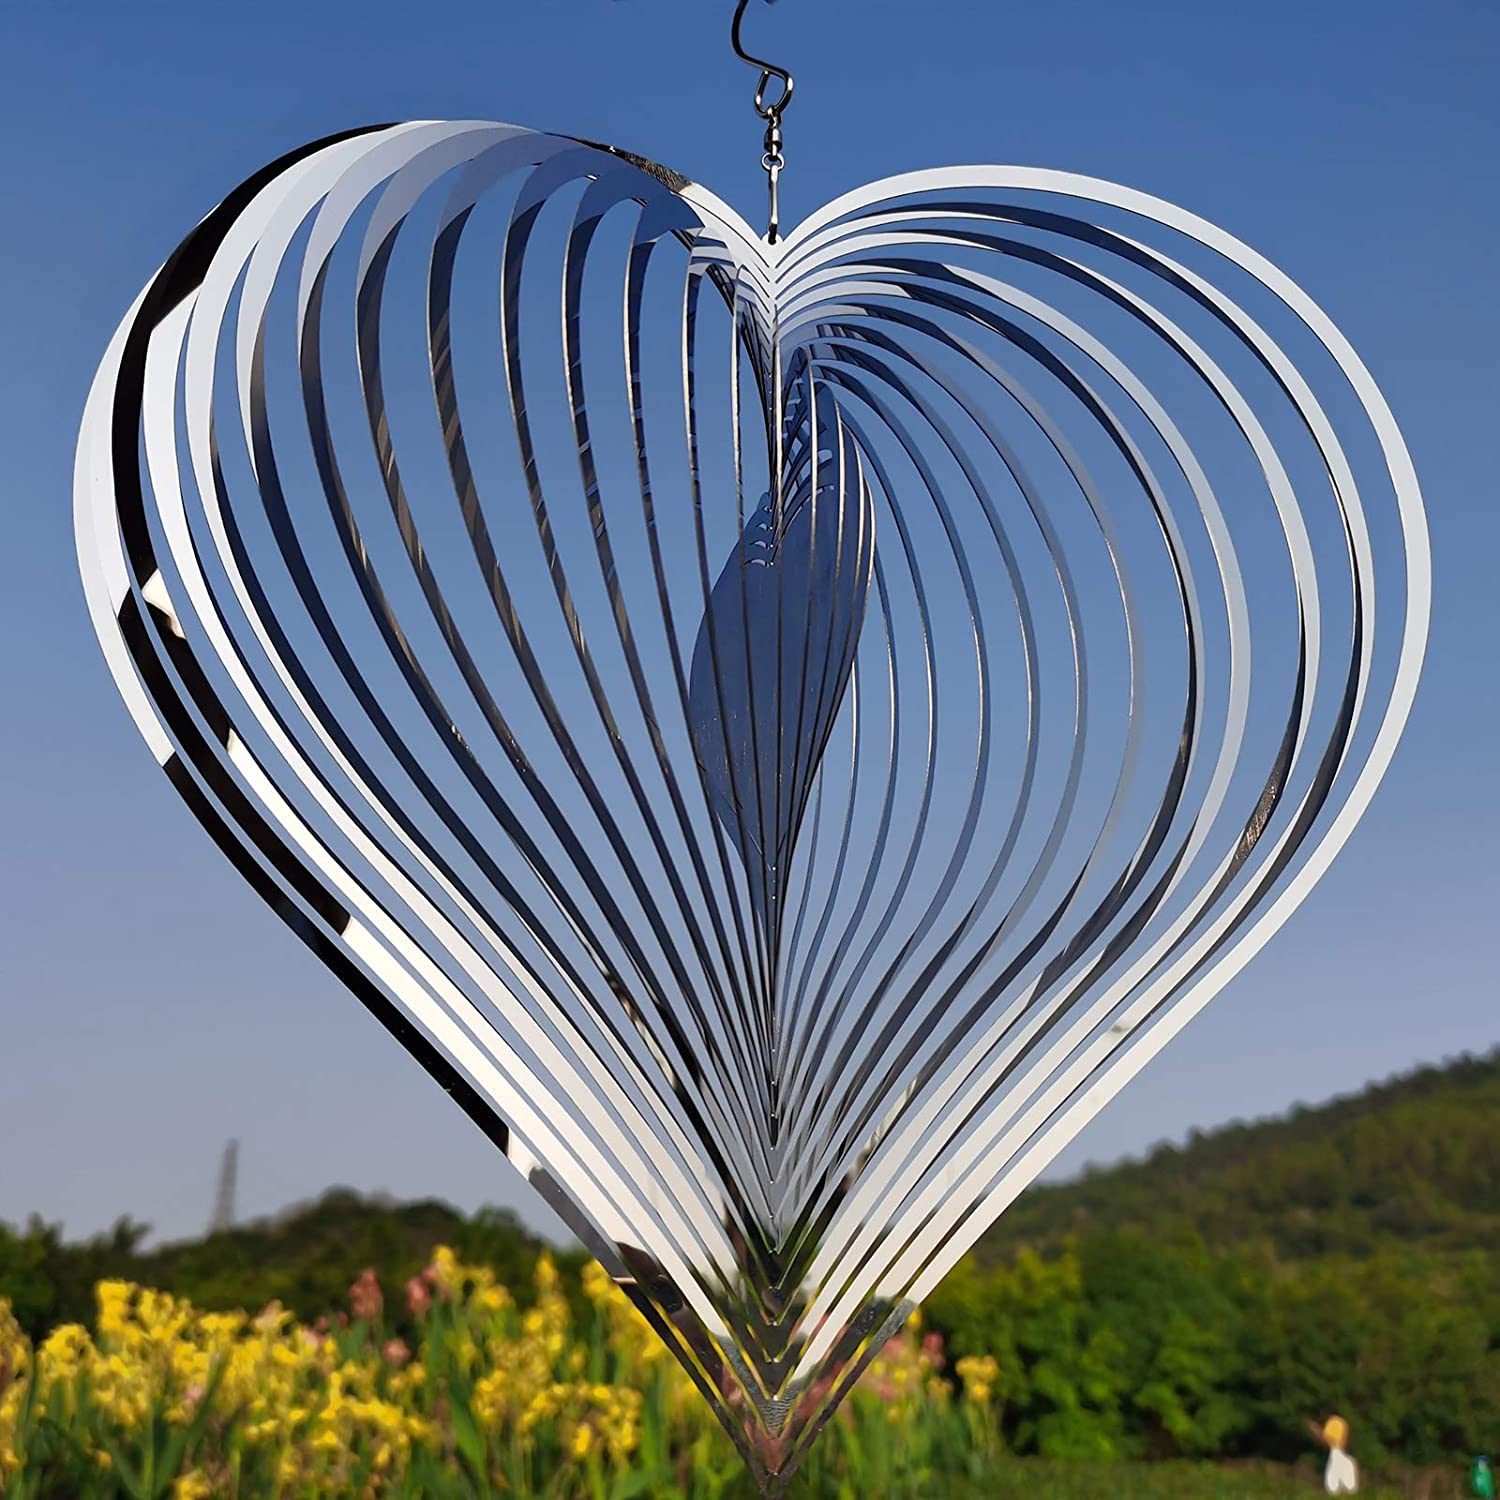 DJUAN 12inches Big Size 3D Mirror Stainless Steel Wind Spinner Worth Gift Indoor Outdoor Garden Decoration Crafts Ornaments,Silver Heart Crafts Ornaments Metal Wind Sculptur